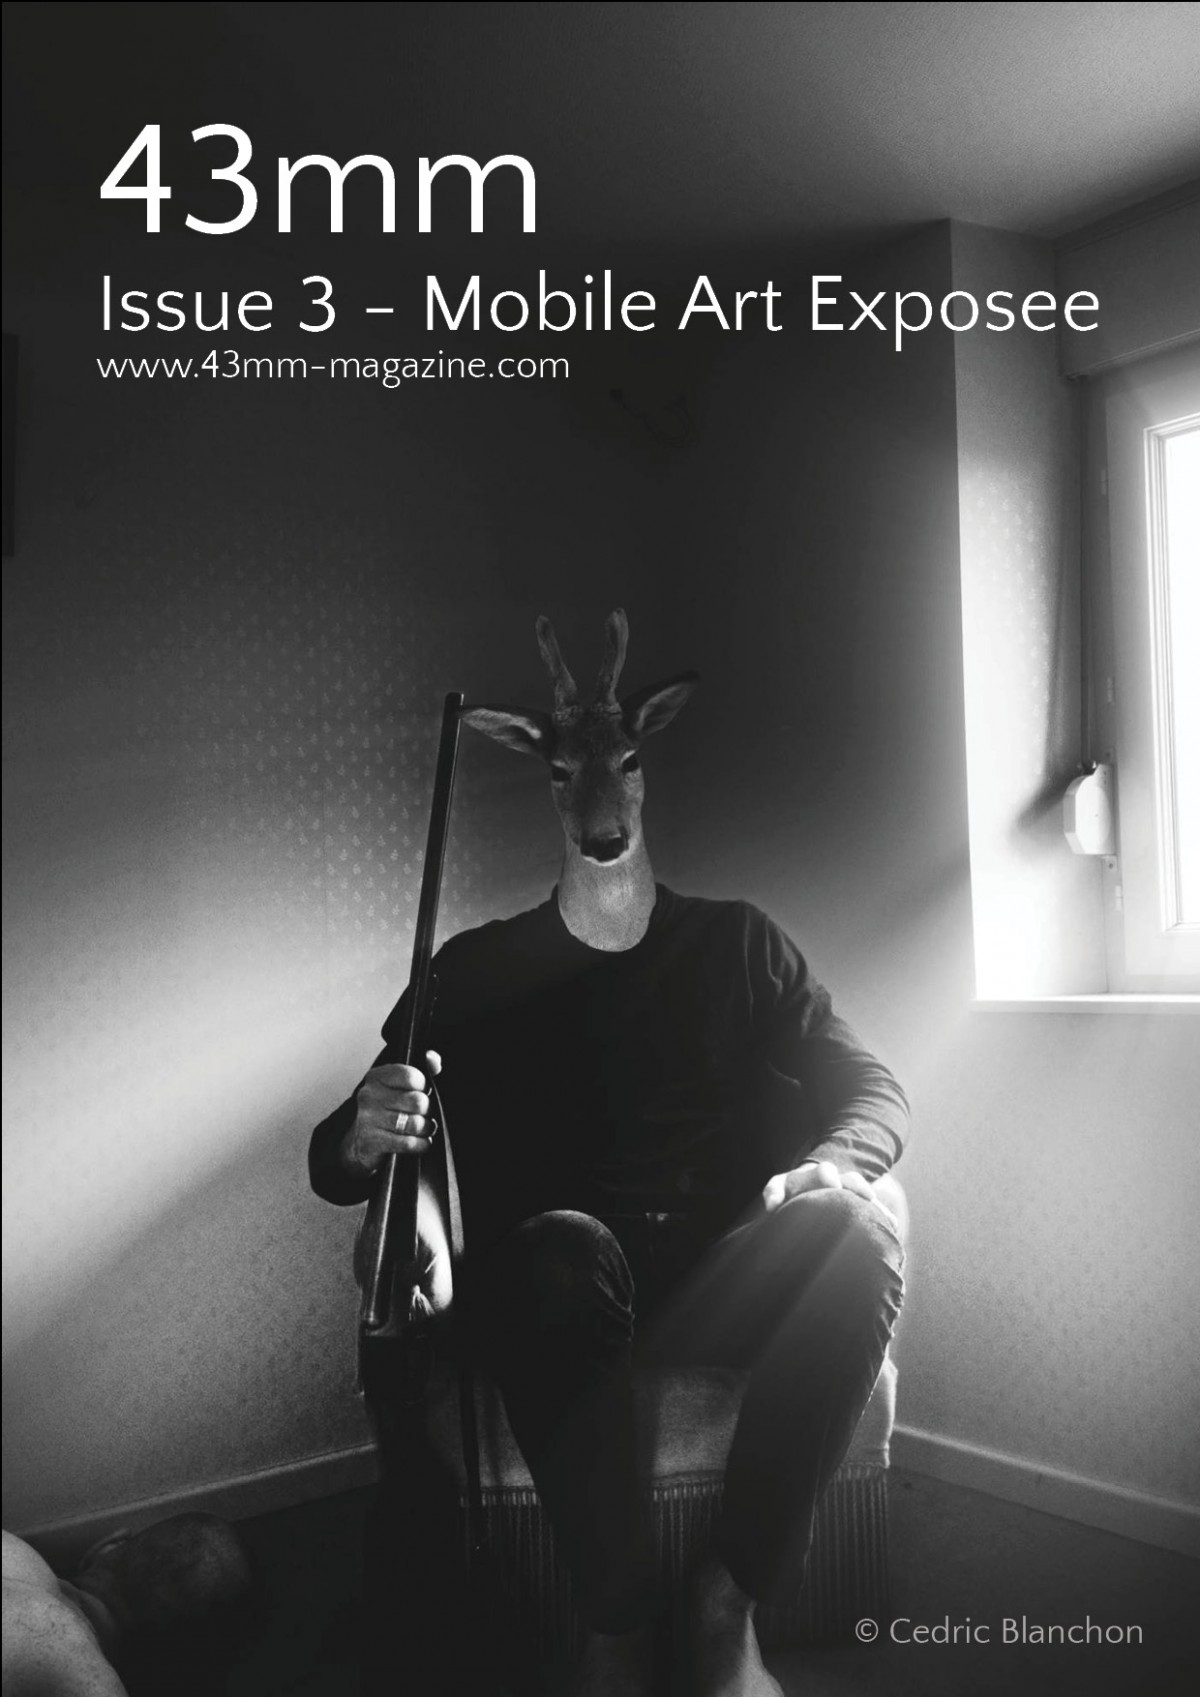 43mm Magazine Issue 3 - Mobile Art Exposée